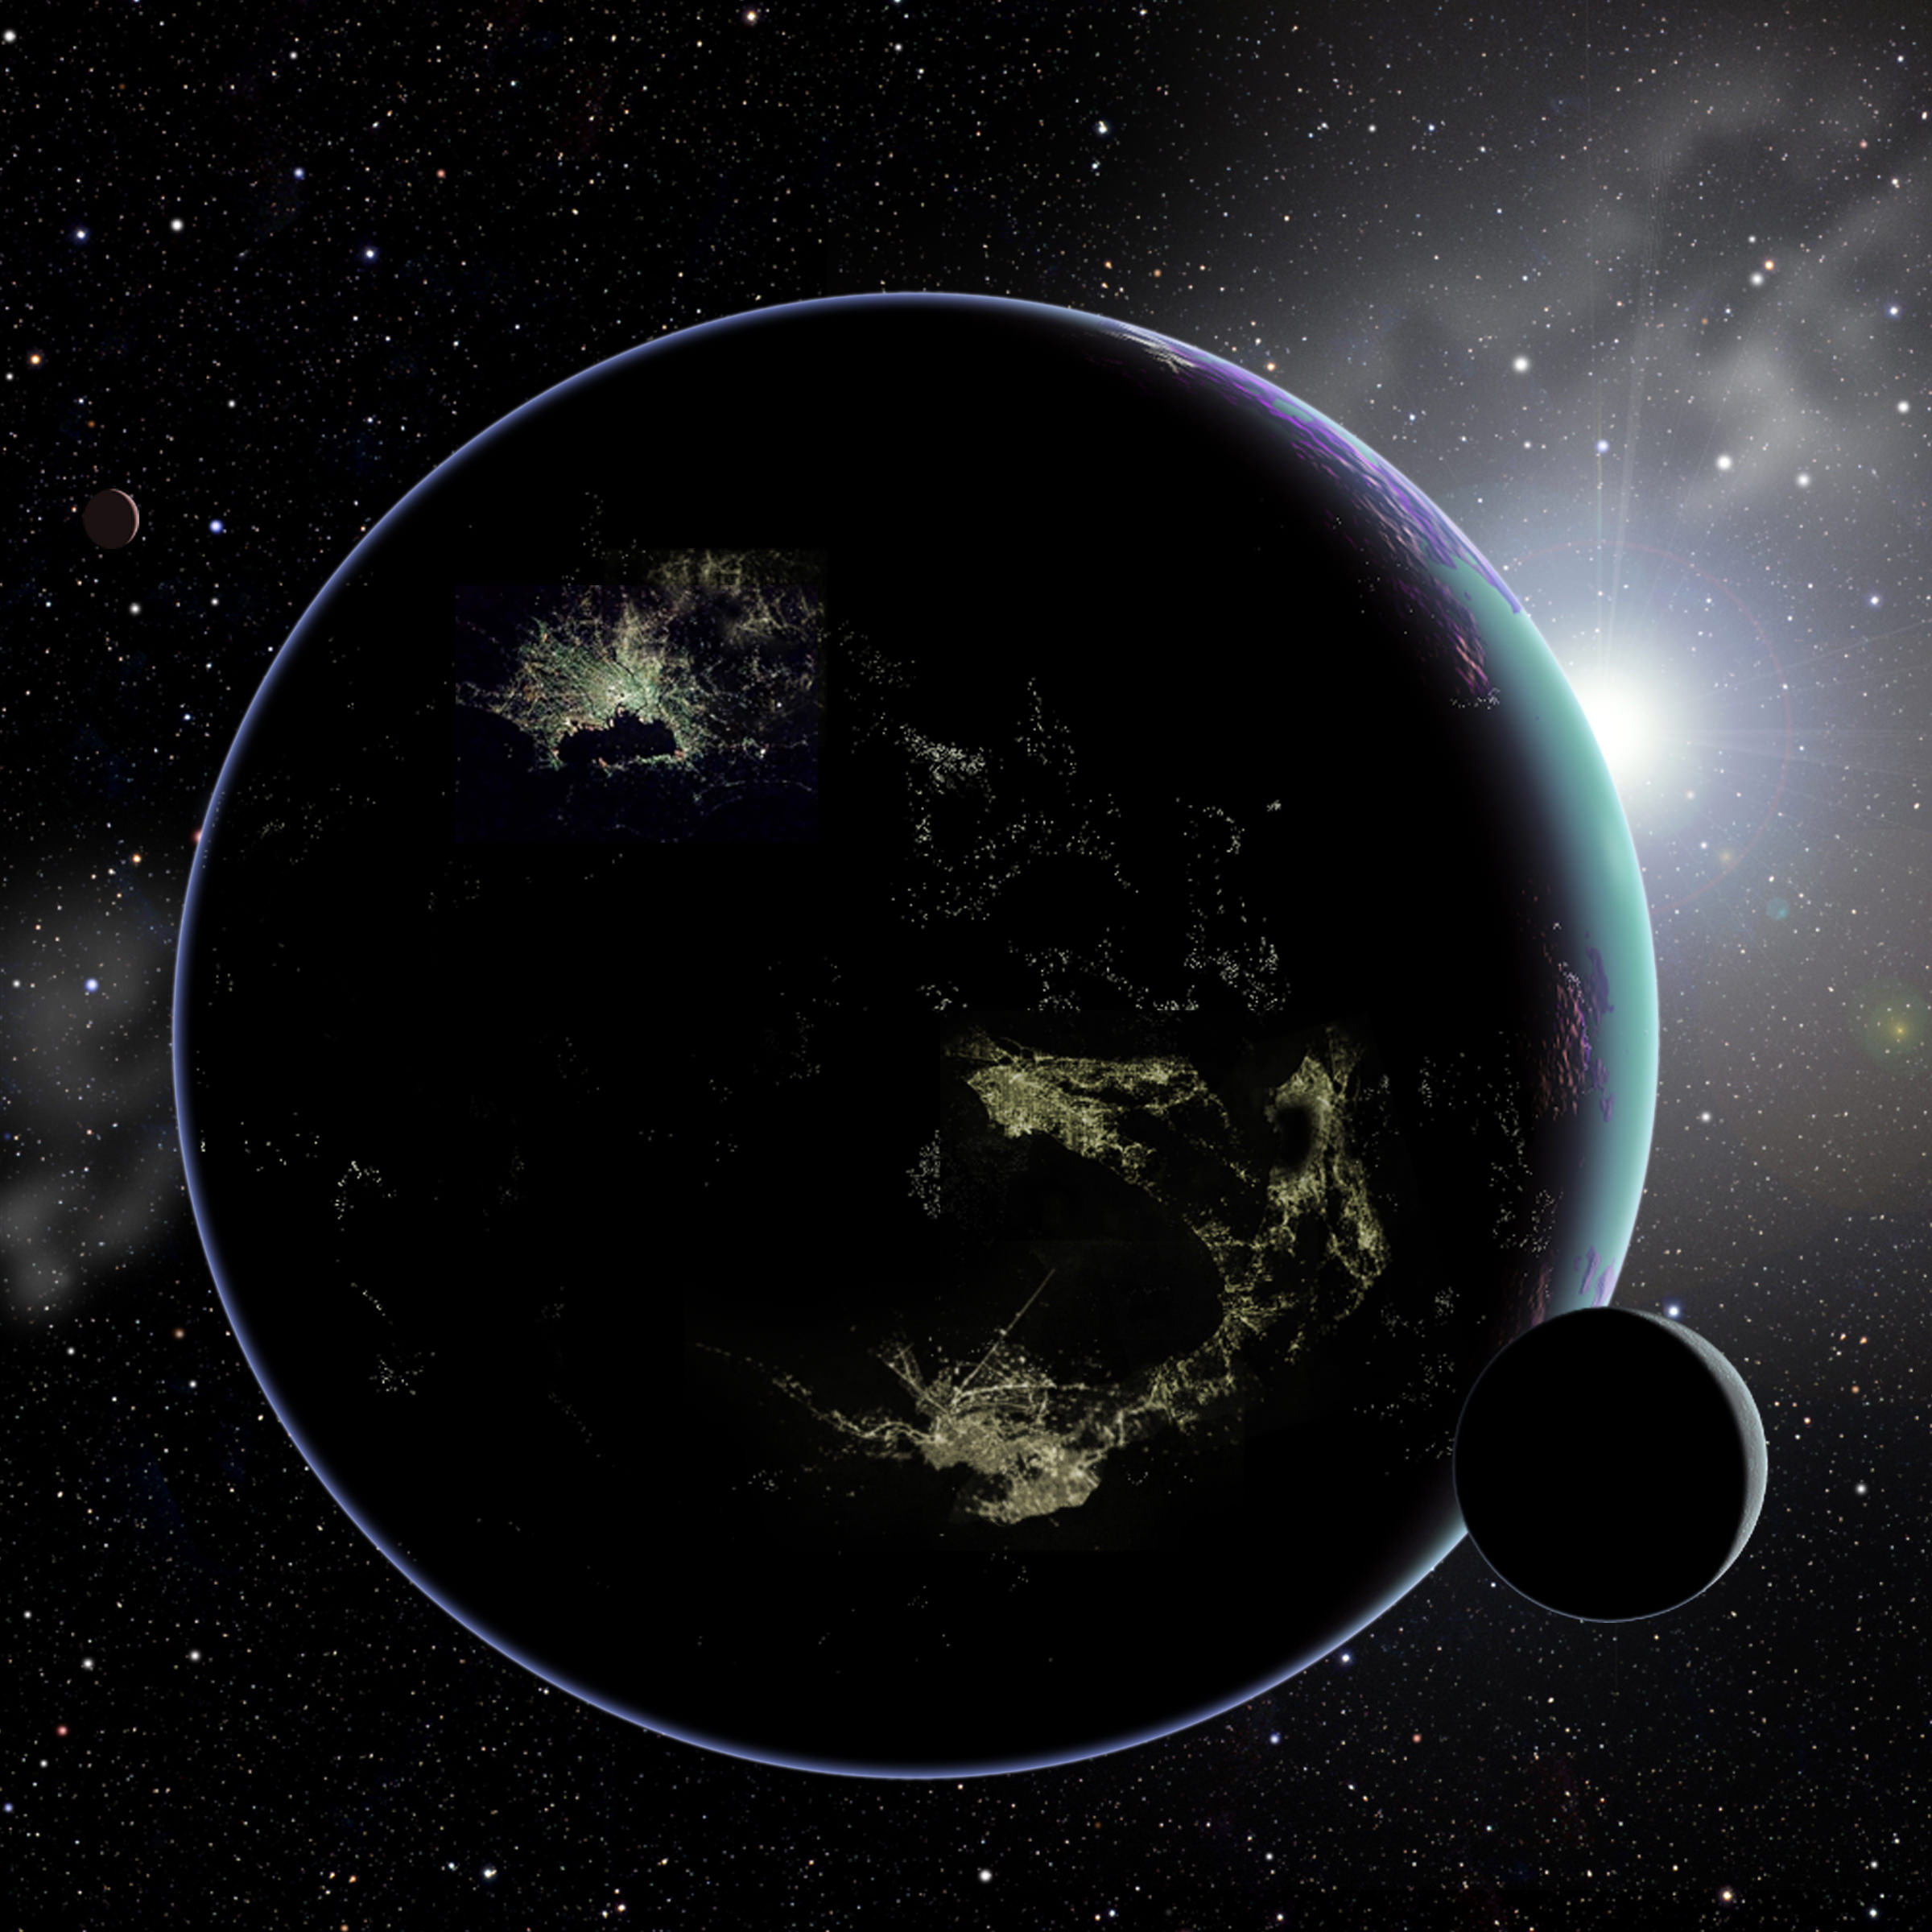 Artist's conception of city lights on an alien planet. - Image Credit: David A. Aguilar (CfA)